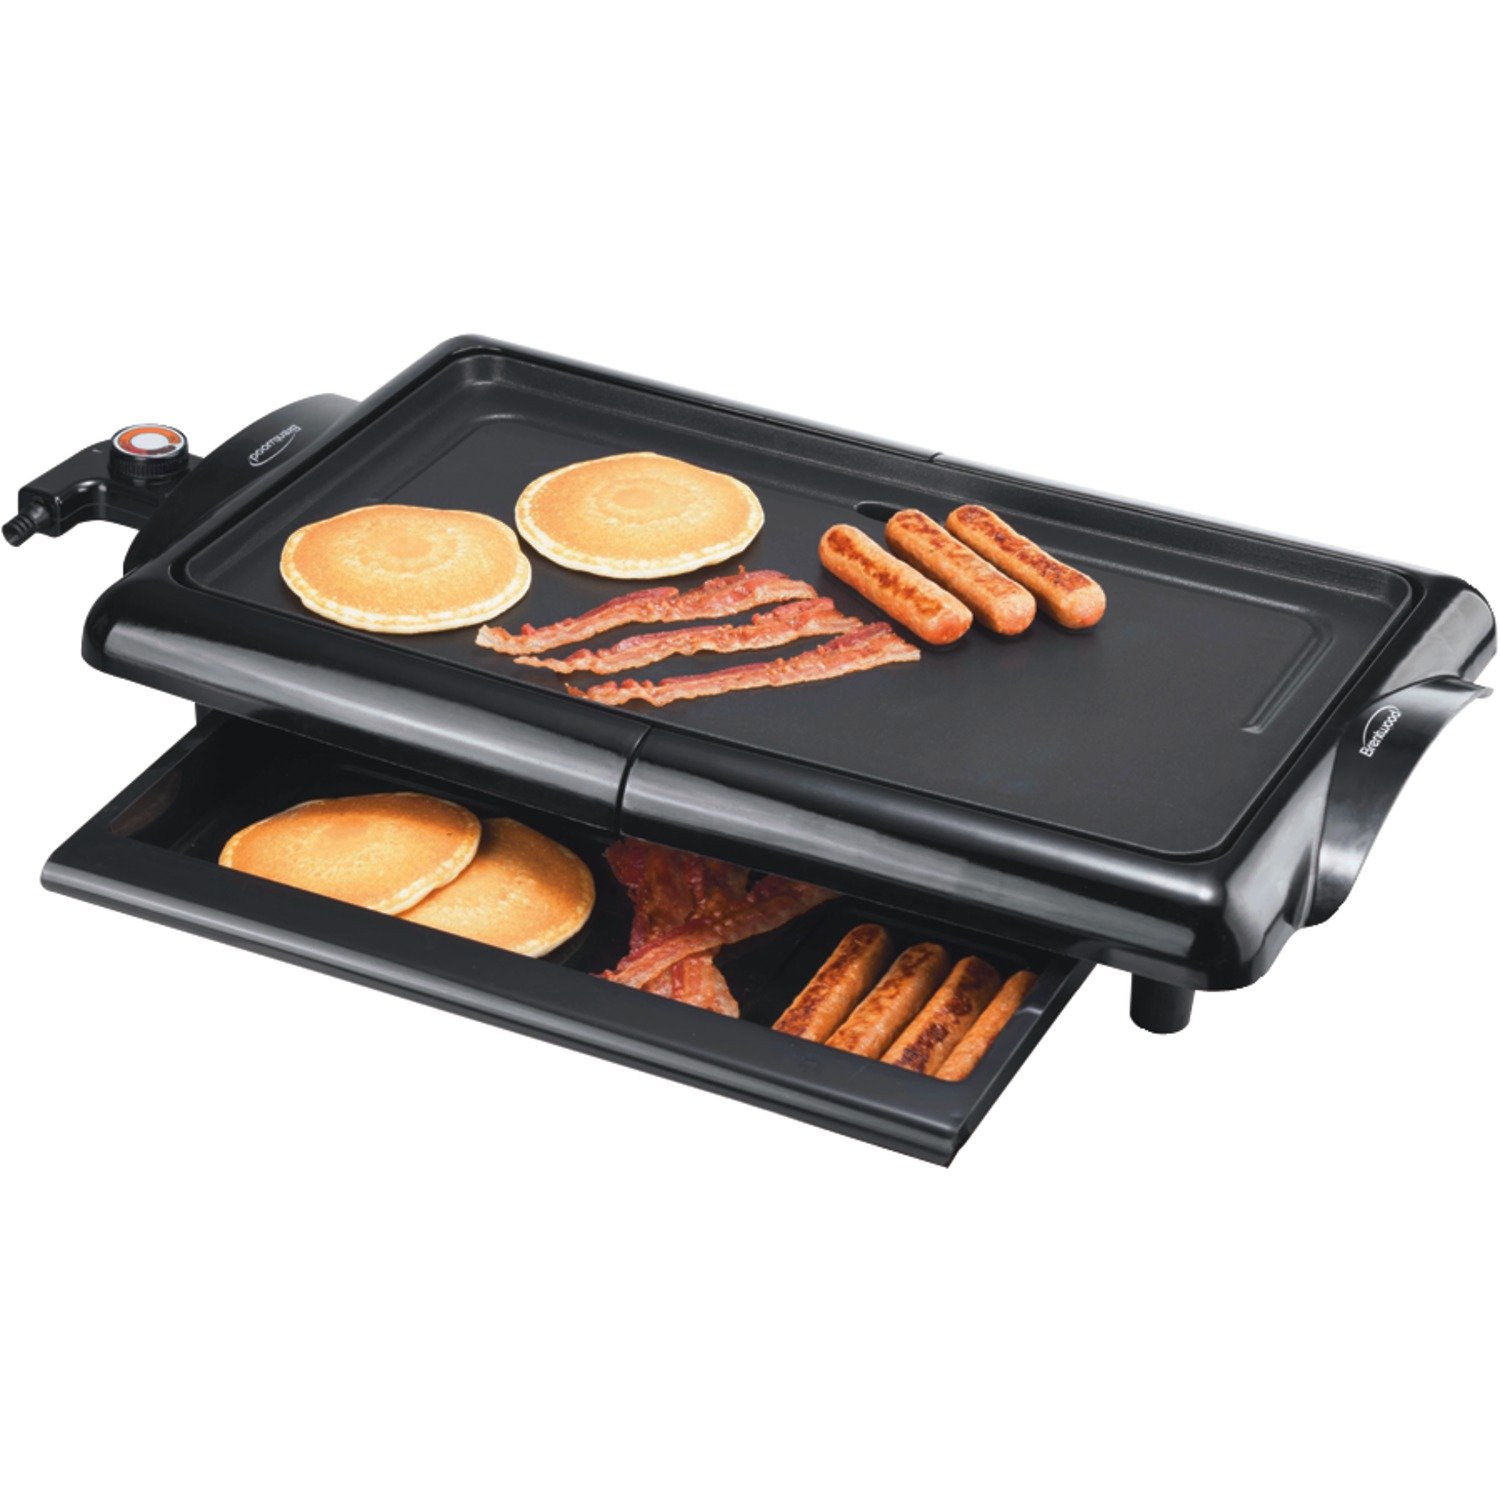 Brentwood  TS-840  Non-Stick  Electric  Griddle  with  Drip  Pan,  10  x  20  Inch,  Black by Brentwood